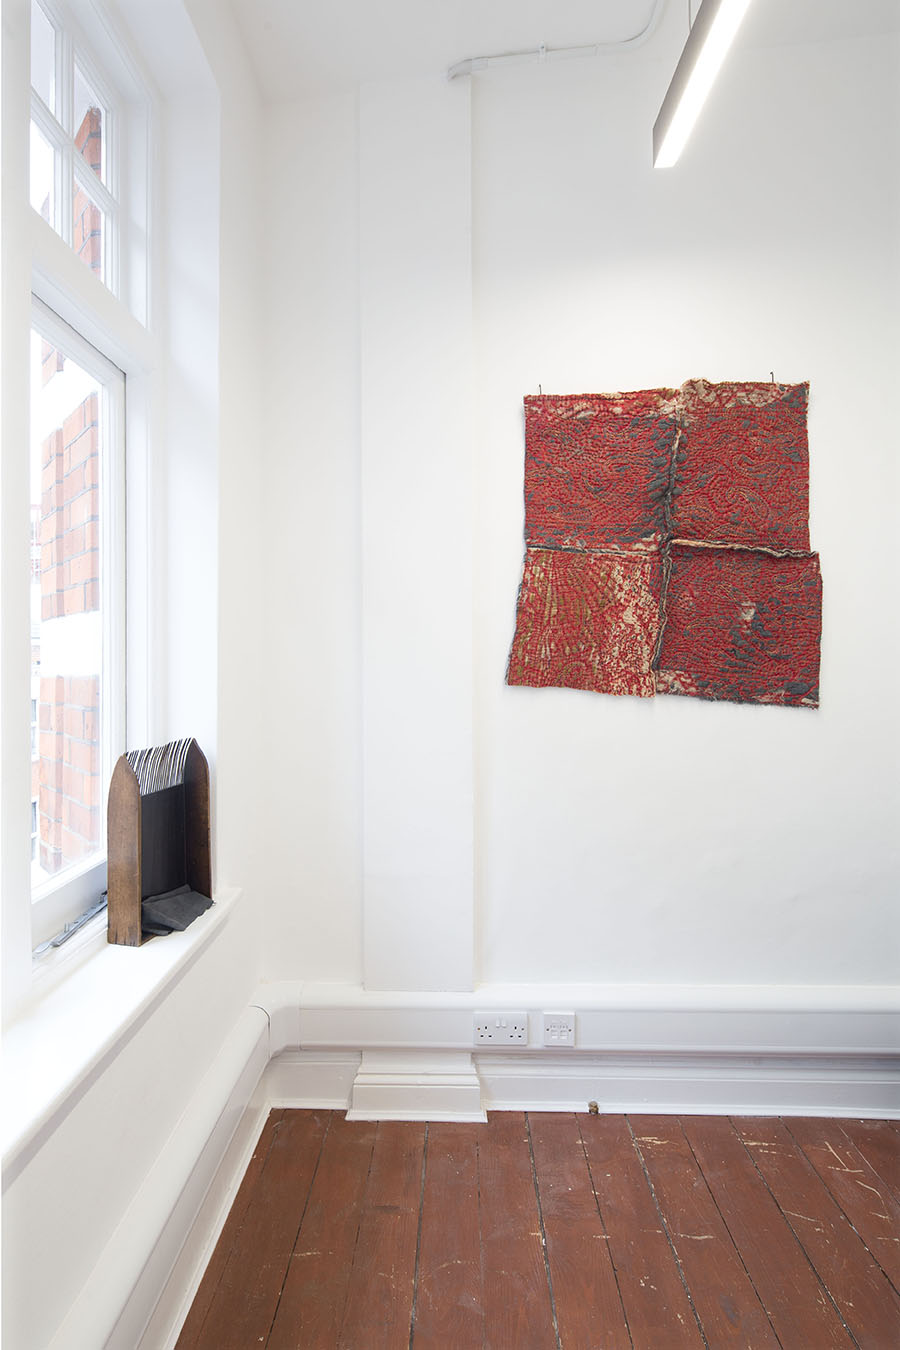 Maya Balcioglu: Recent Drawings and Fabric Works at Lungley Gallery. Exhibition view